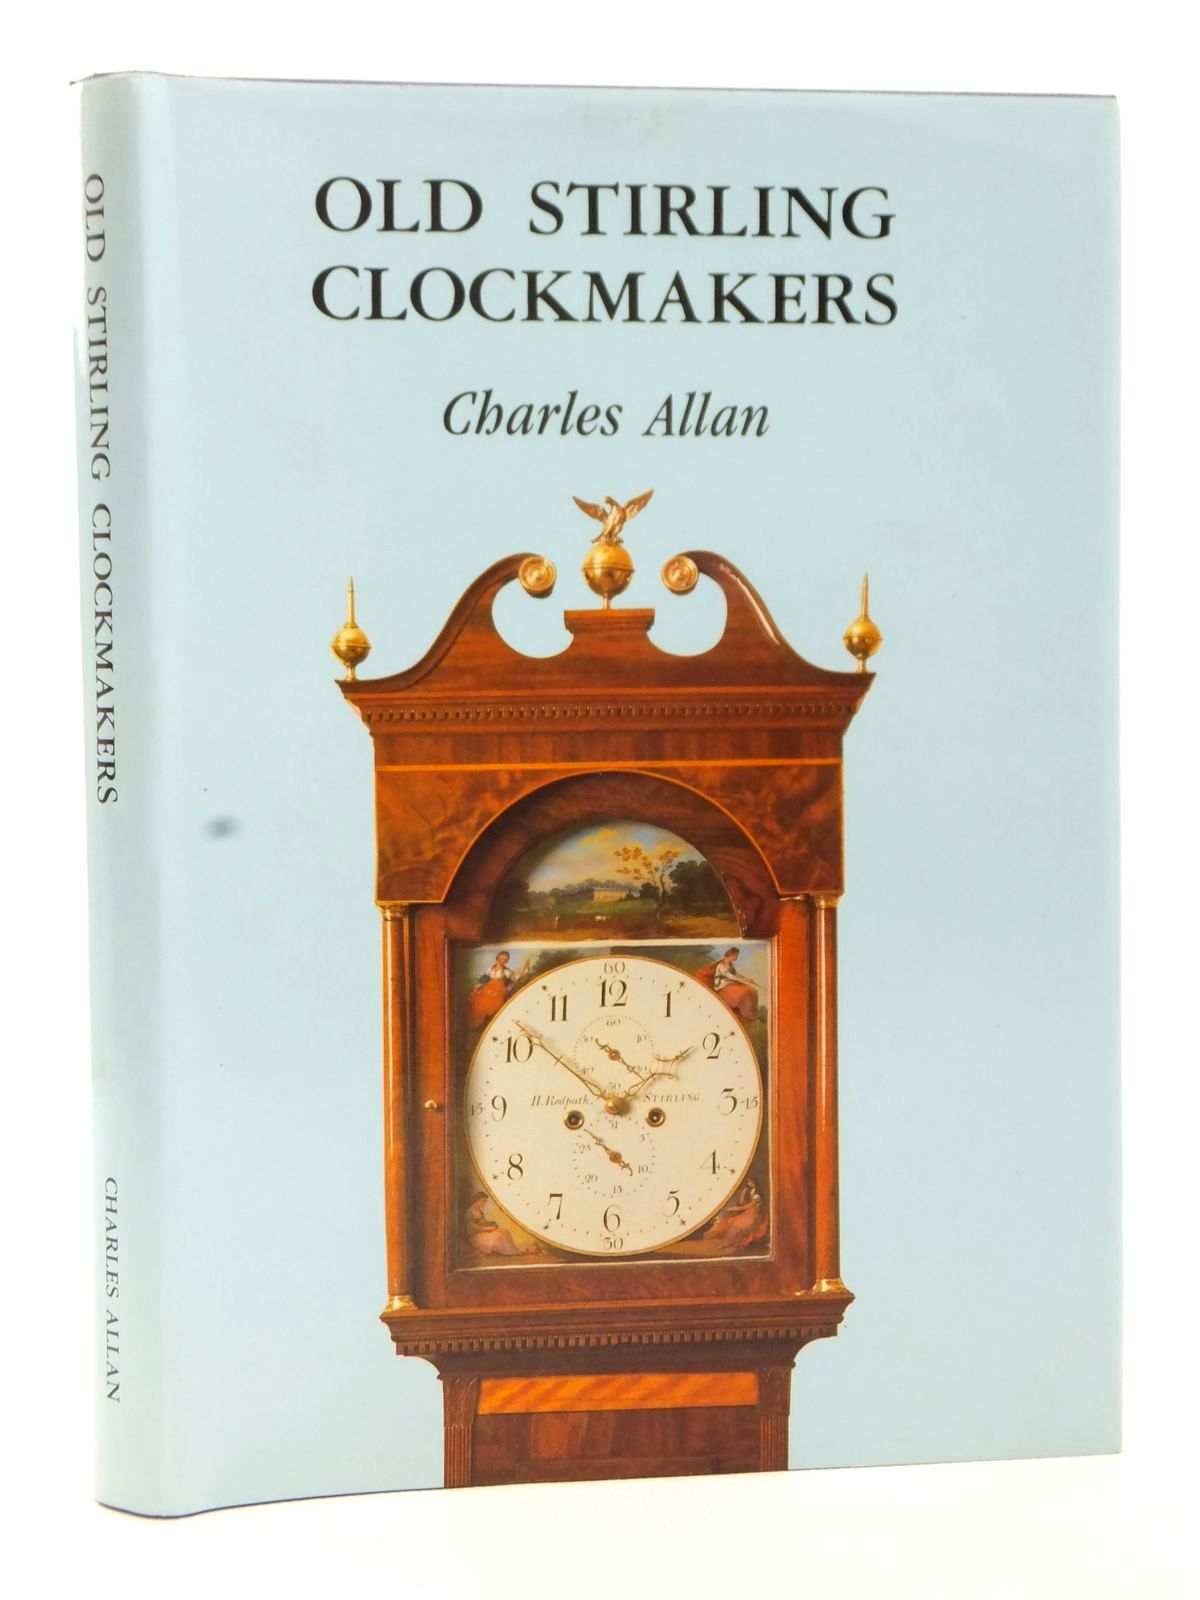 Photo of OLD STIRLING CLOCKMAKERS written by Allan, Charles published by Charles Allan (STOCK CODE: 1609244)  for sale by Stella & Rose's Books